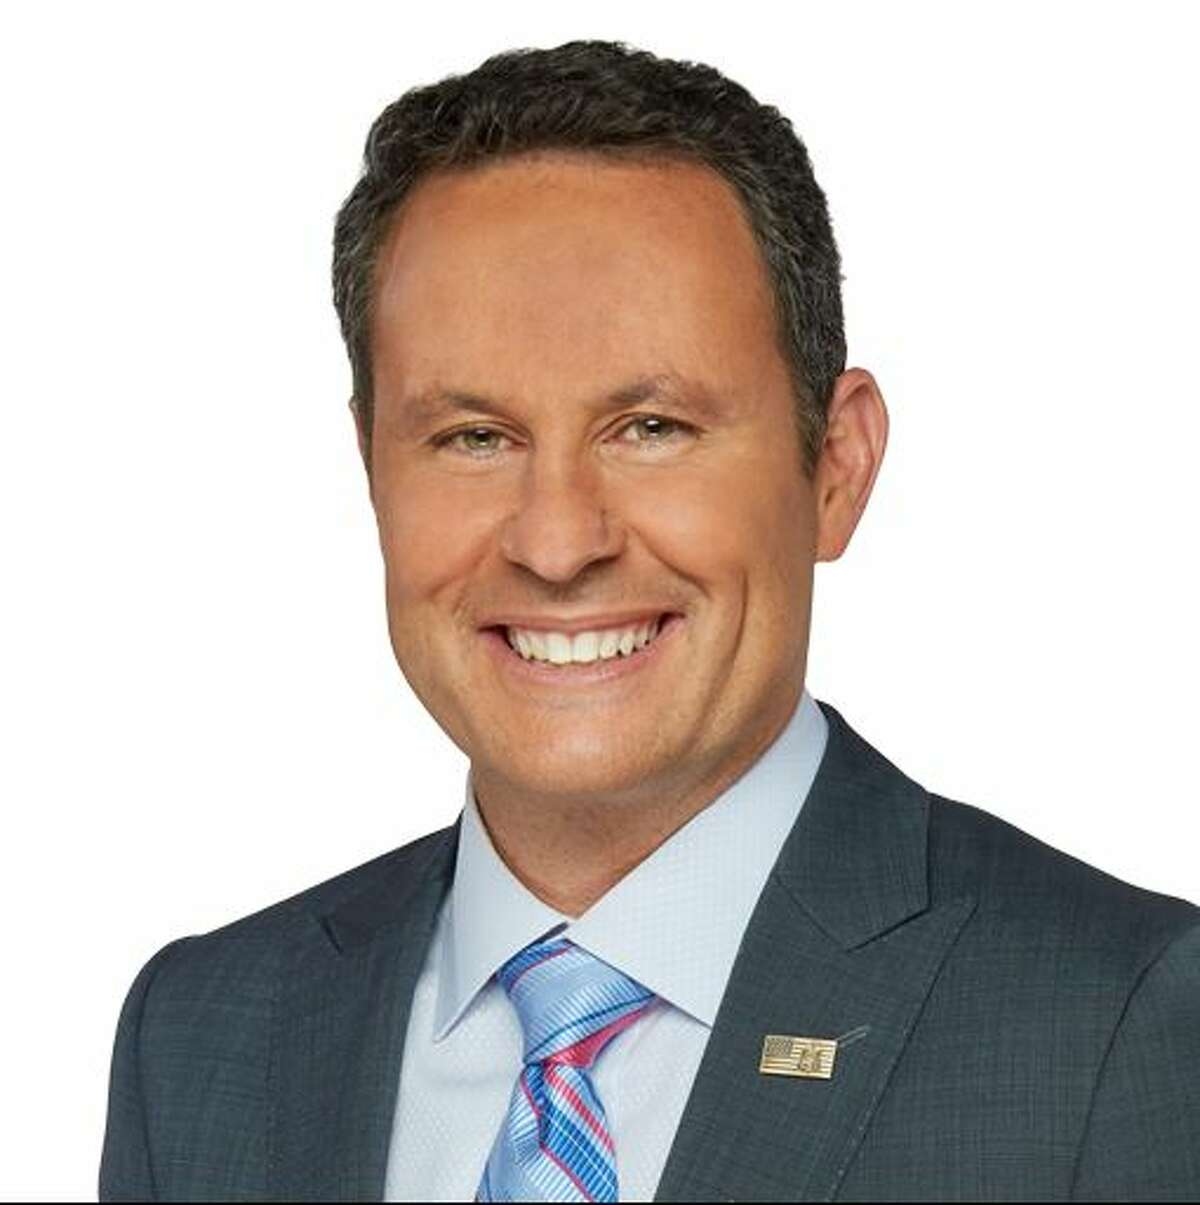 FOX & Friends co-host Brian Kilmeade will be in San Antonio this weekend as part of his book tour.